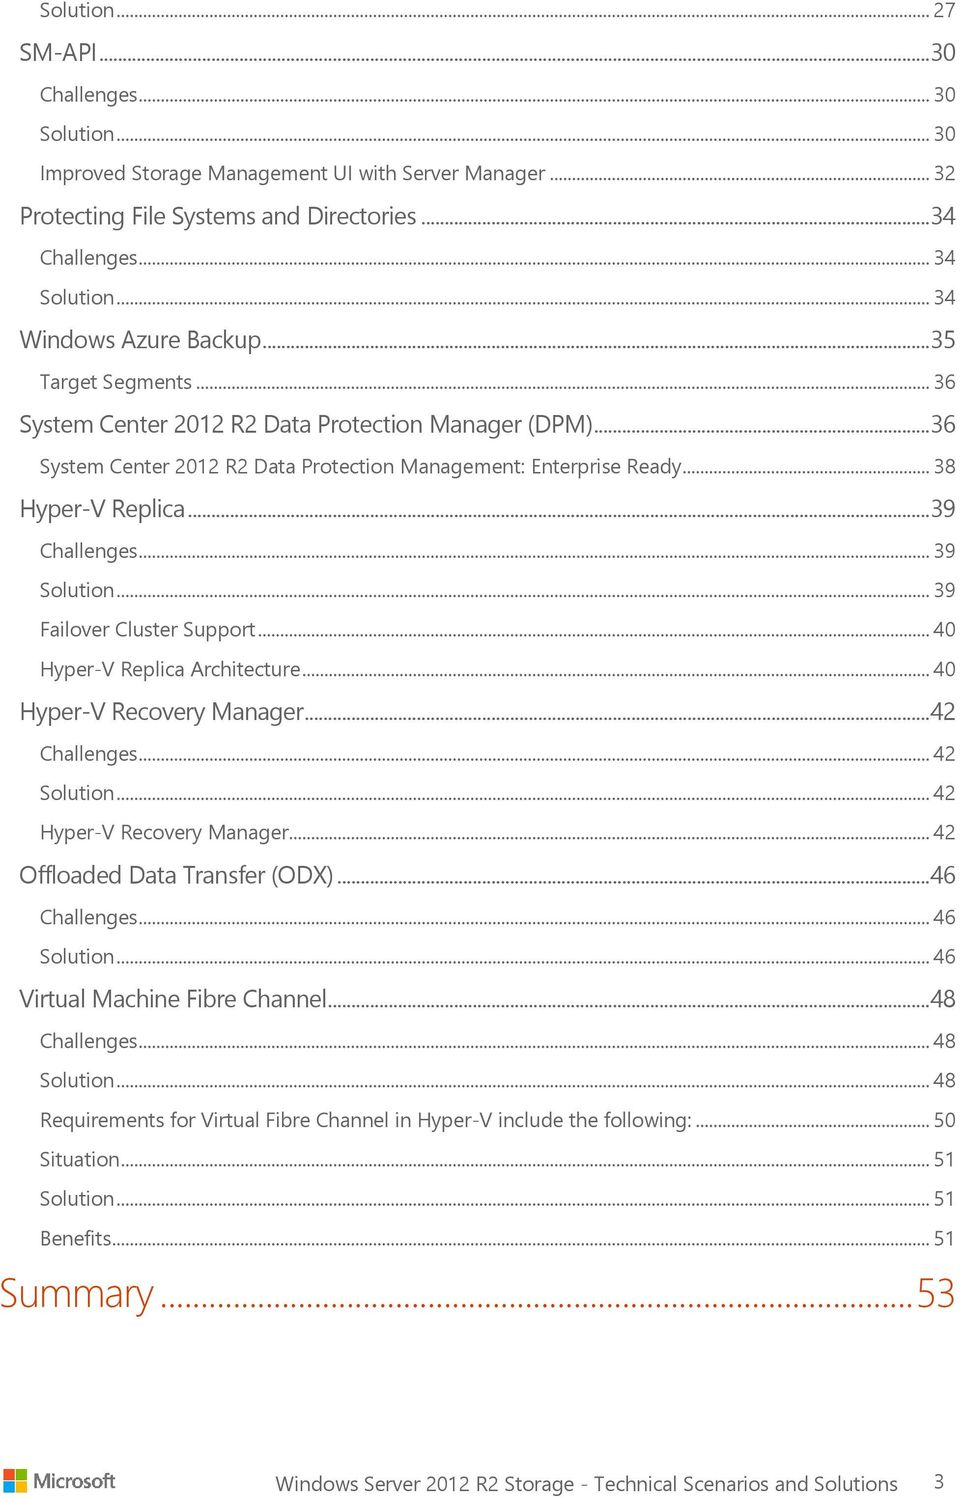 .. 39 Challenges... 39 Solution... 39 Failover Cluster Support... 40 Hyper-V Replica Architecture... 40 Hyper-V Recovery Manager... 42 Challenges... 42 Solution... 42 Hyper-V Recovery Manager.